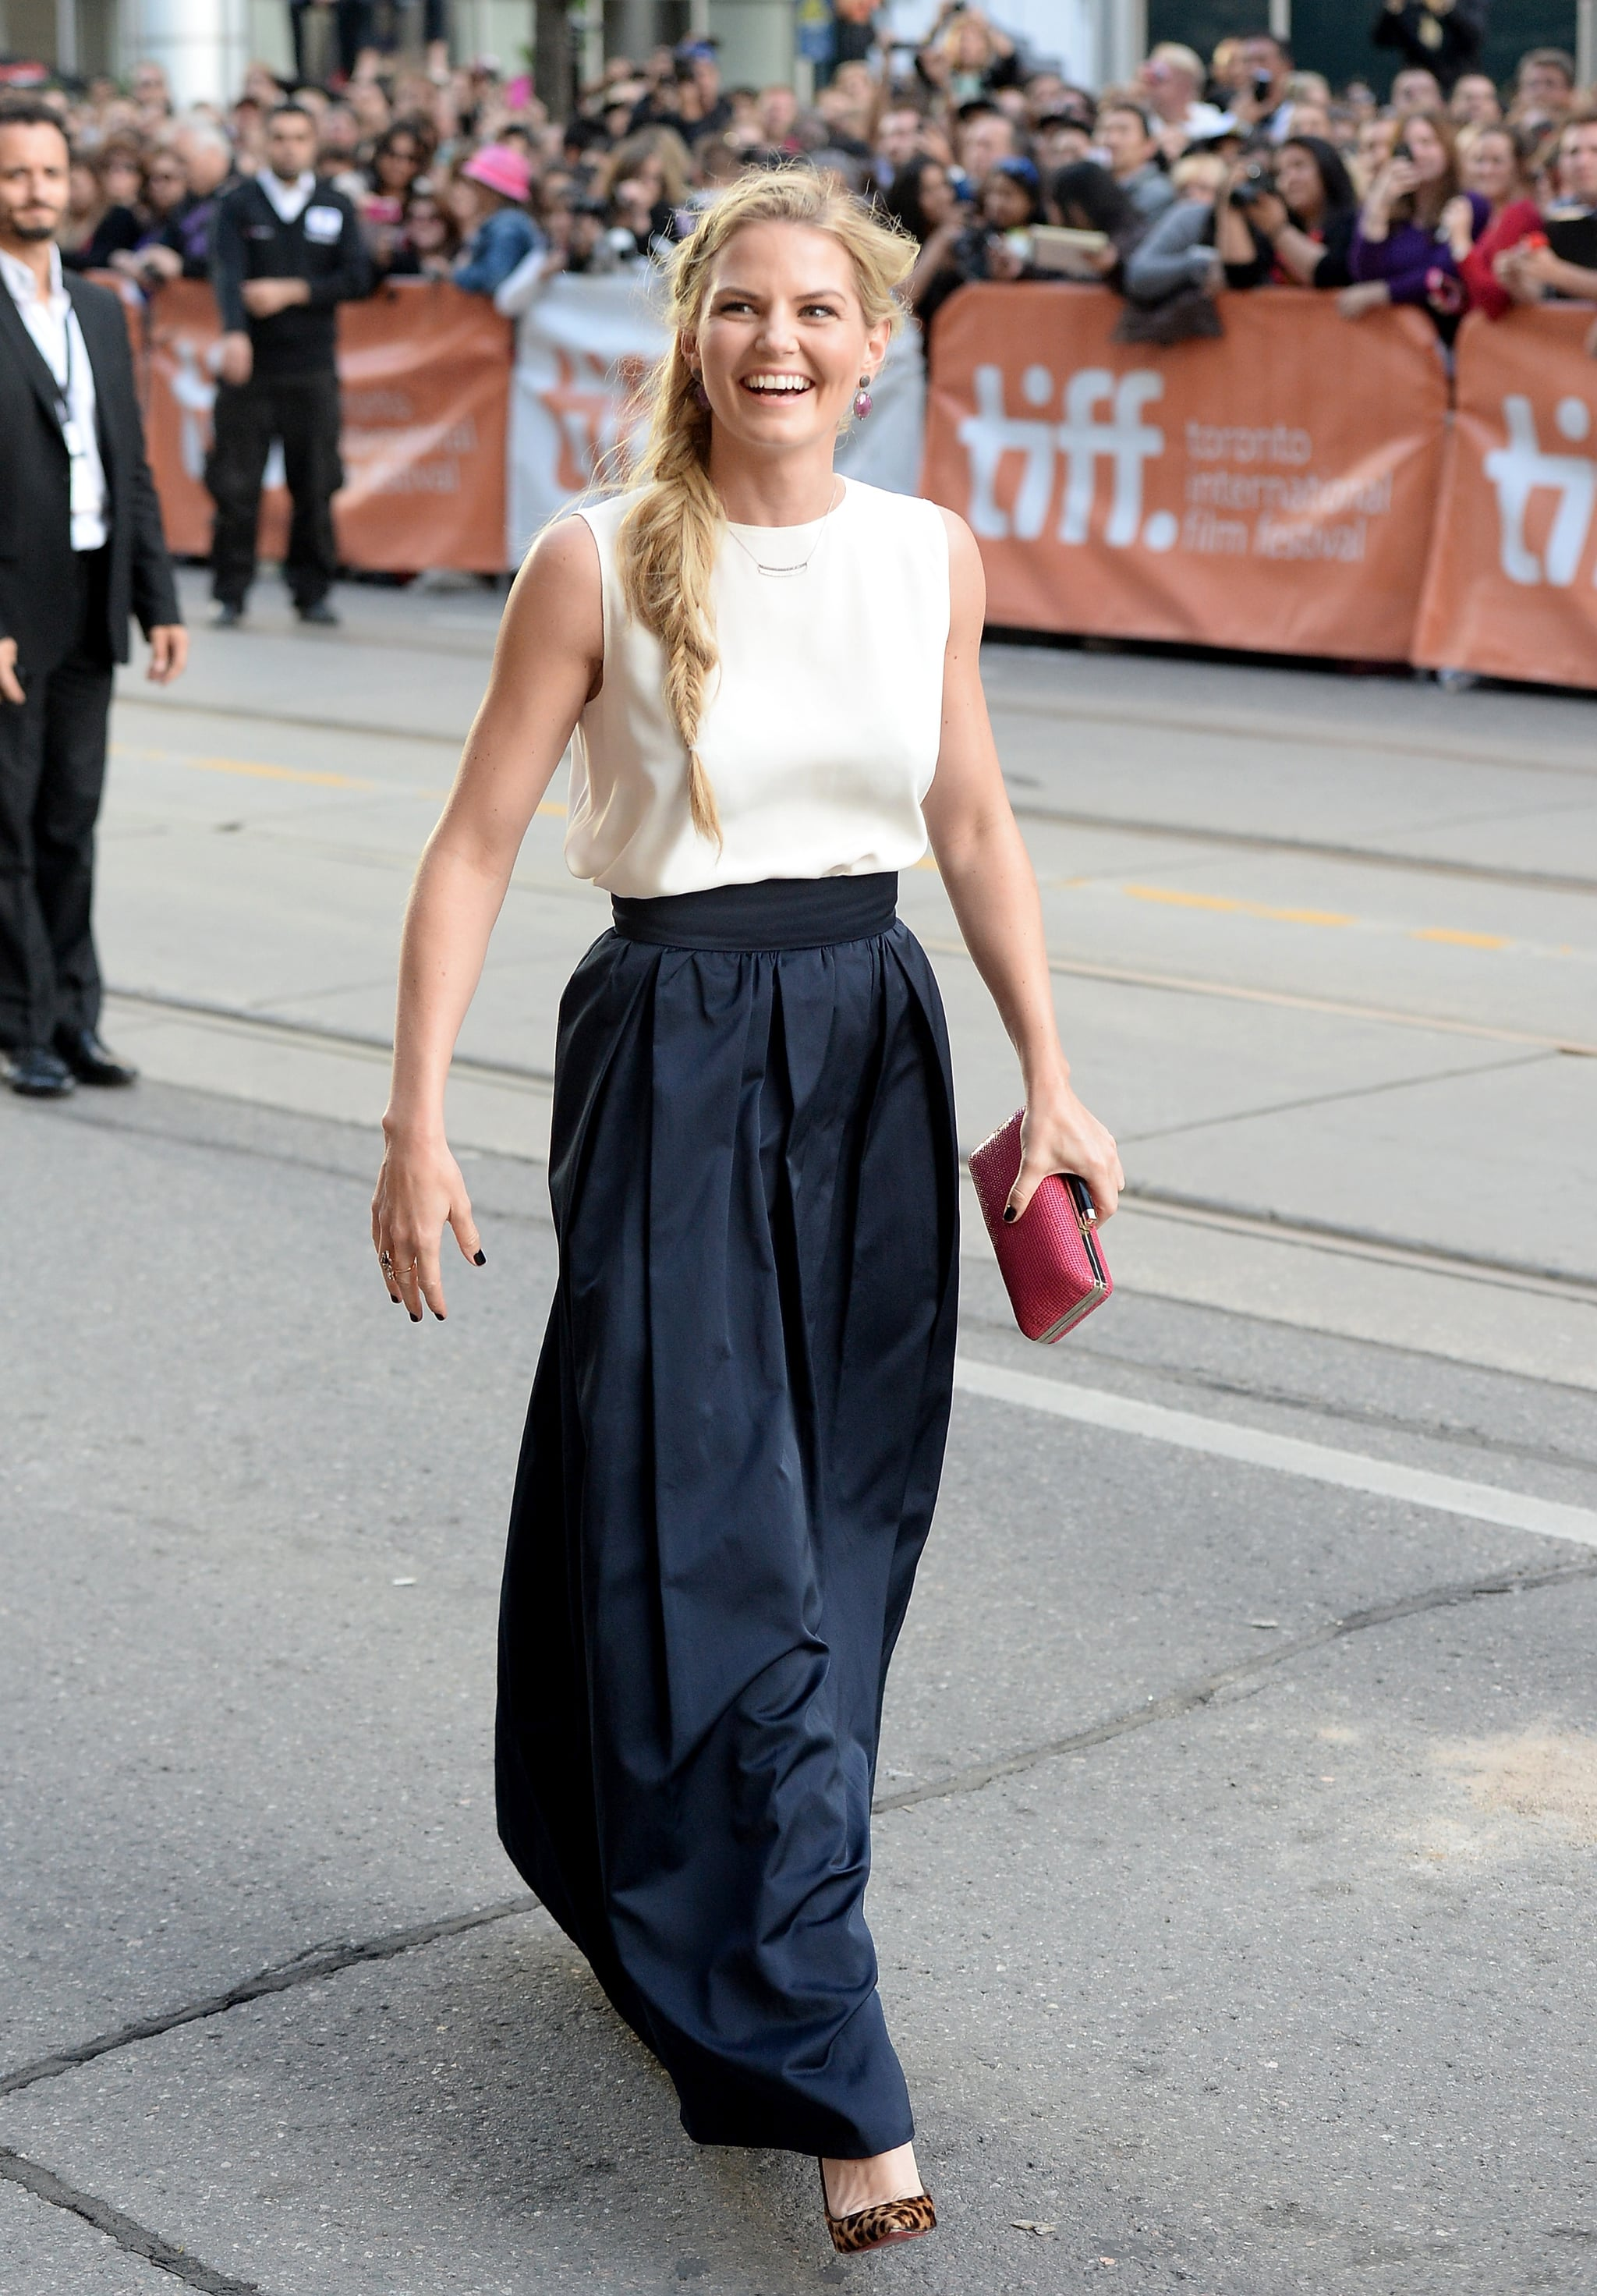 Jennifer Morrison was in good spirits as she arrived at the premiere of Gravity.